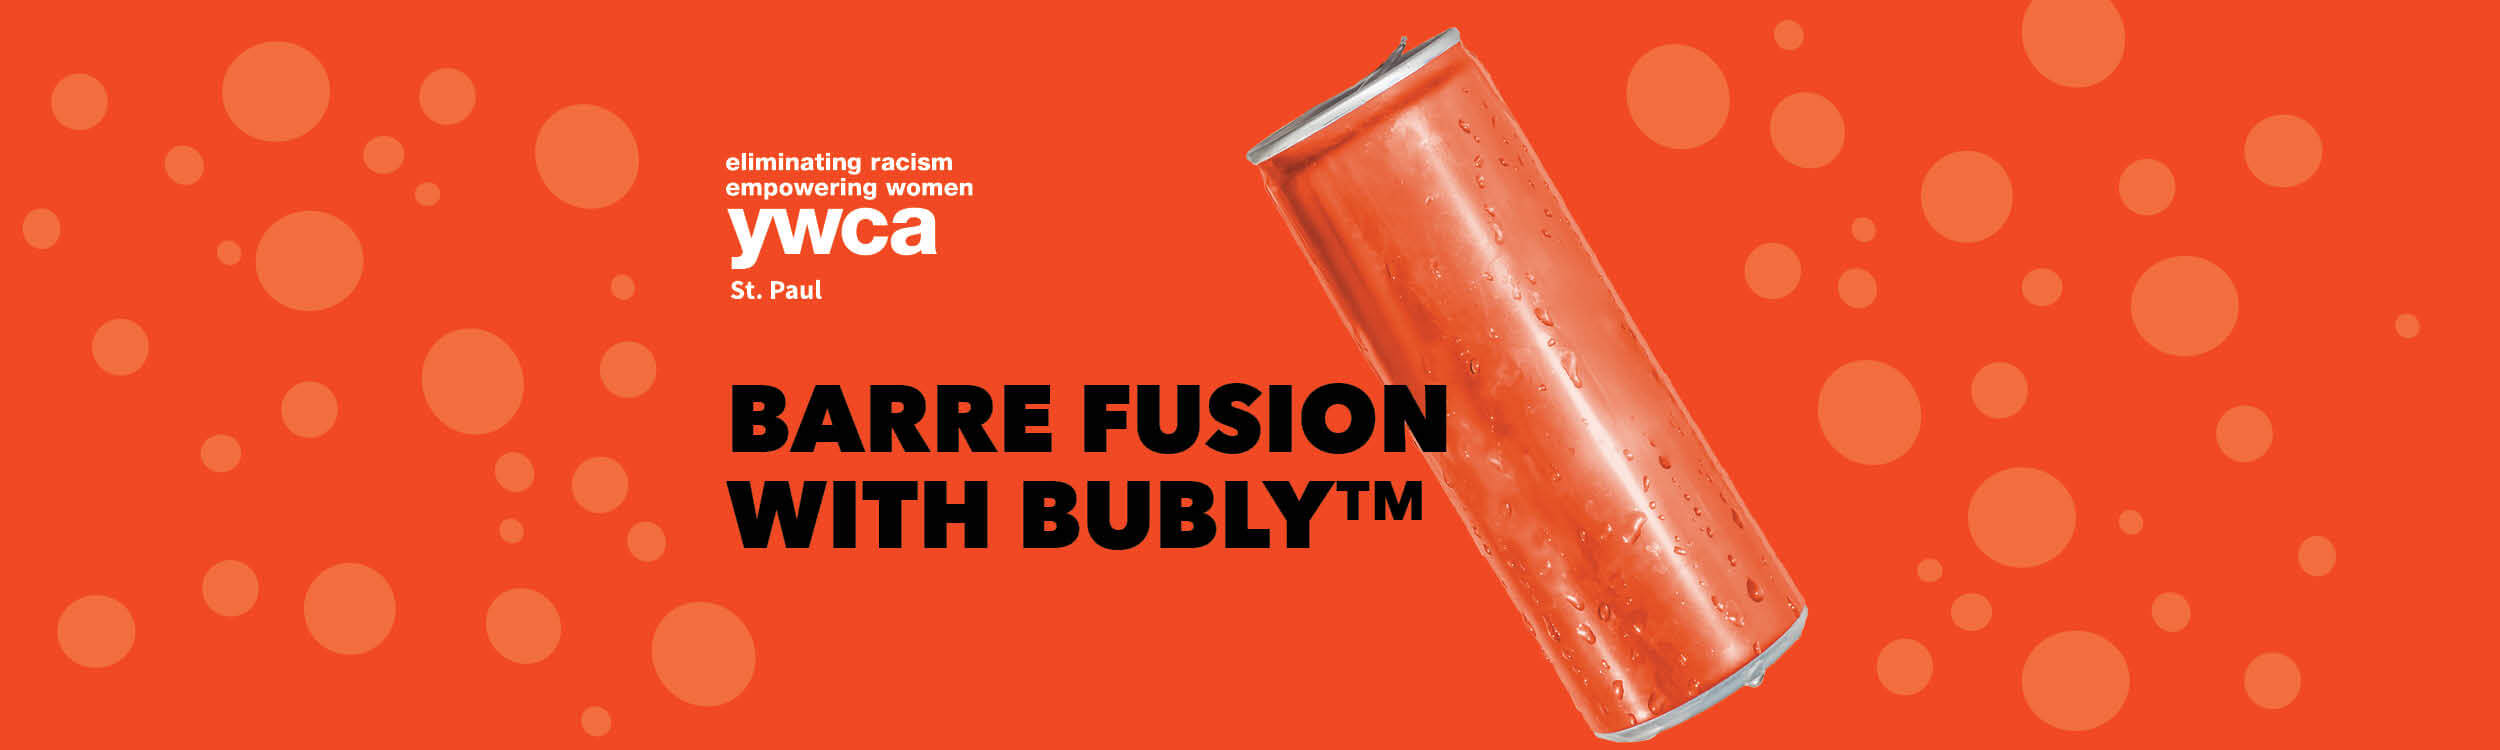 barre fusion with Bubly background image